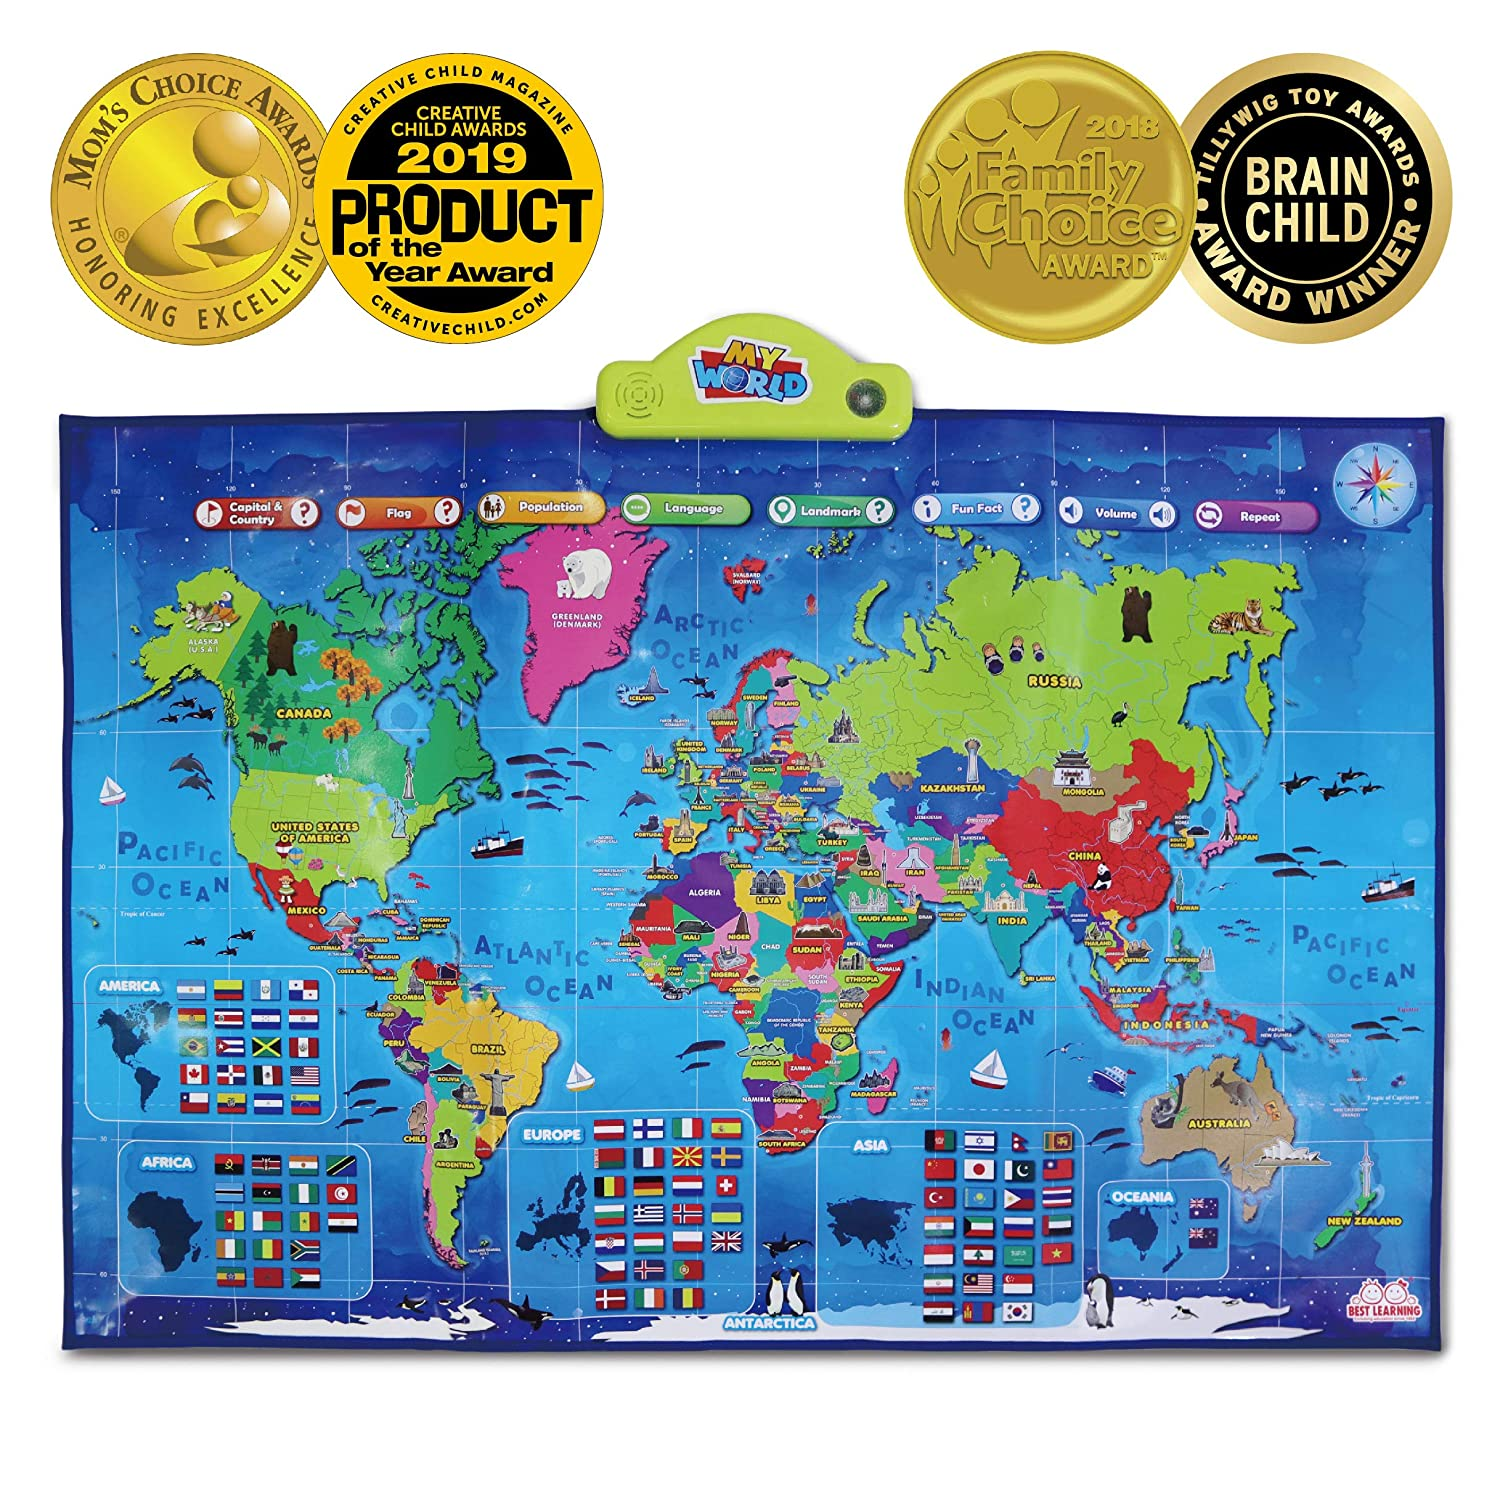 10 Best World Map for Kids Reviews in 2021 13